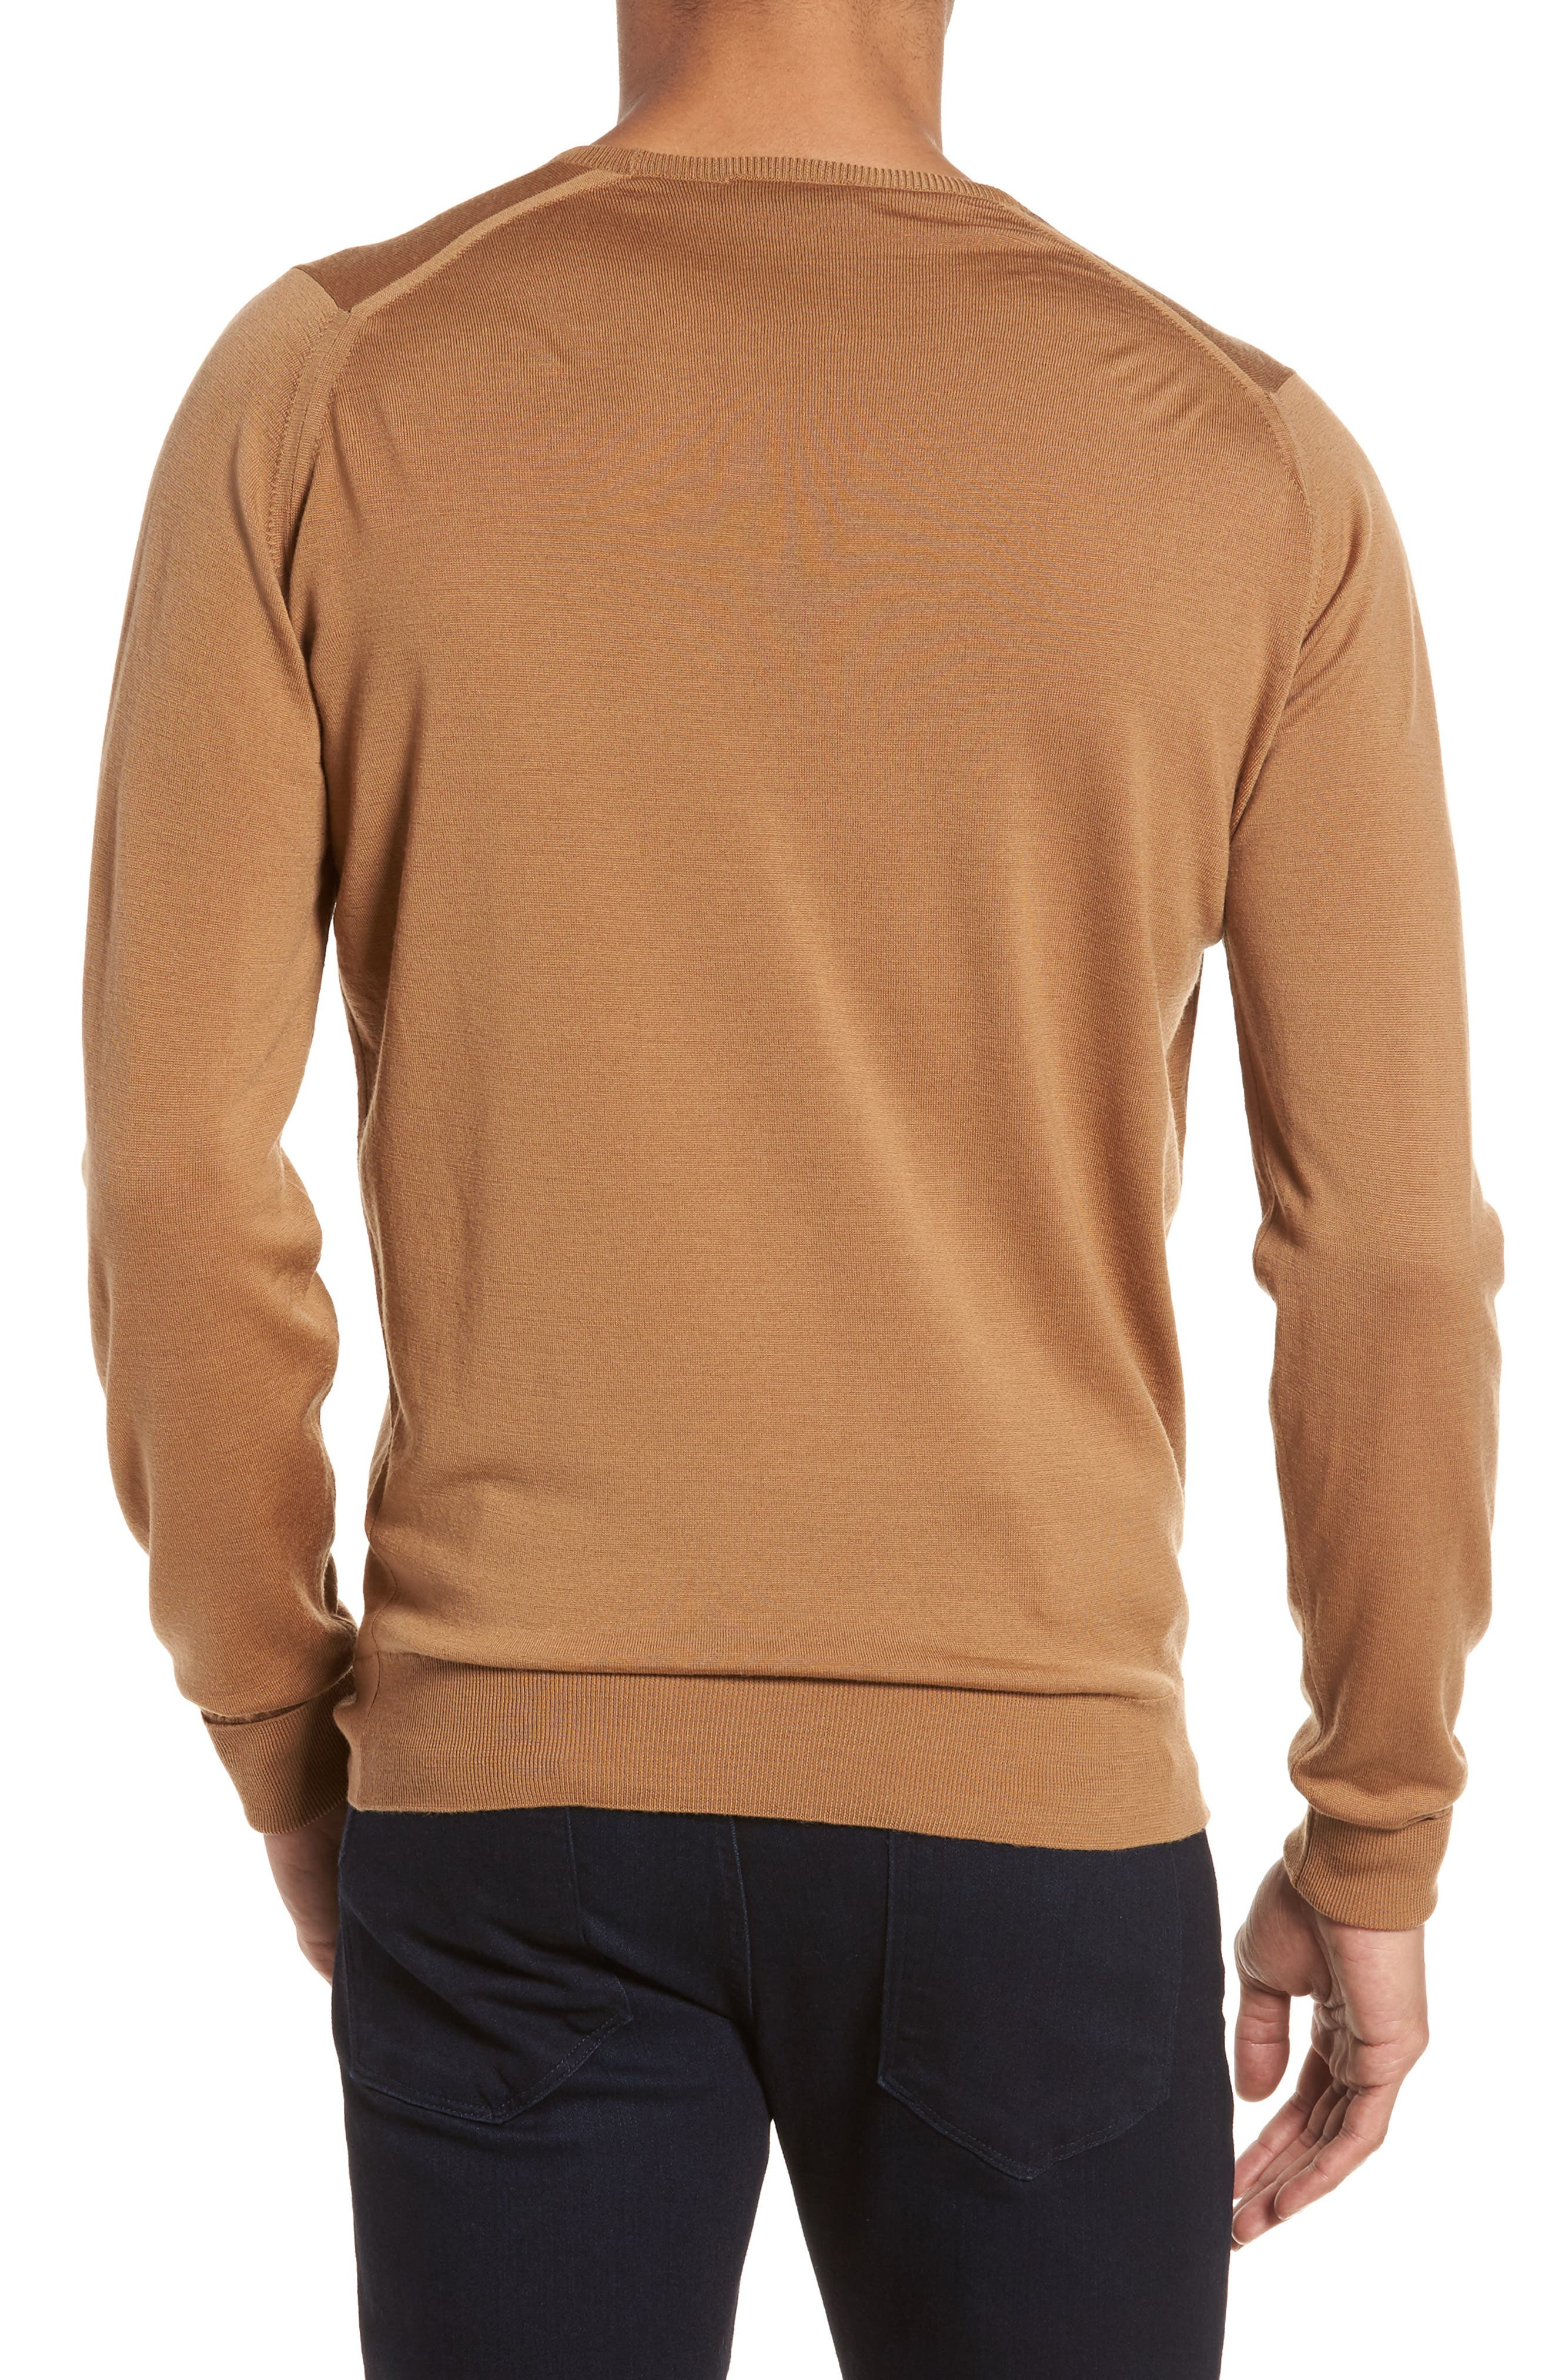 'Marcus' Easy Fit Crewneck Wool Sweater,                             Alternate thumbnail 2, color,                             Camel